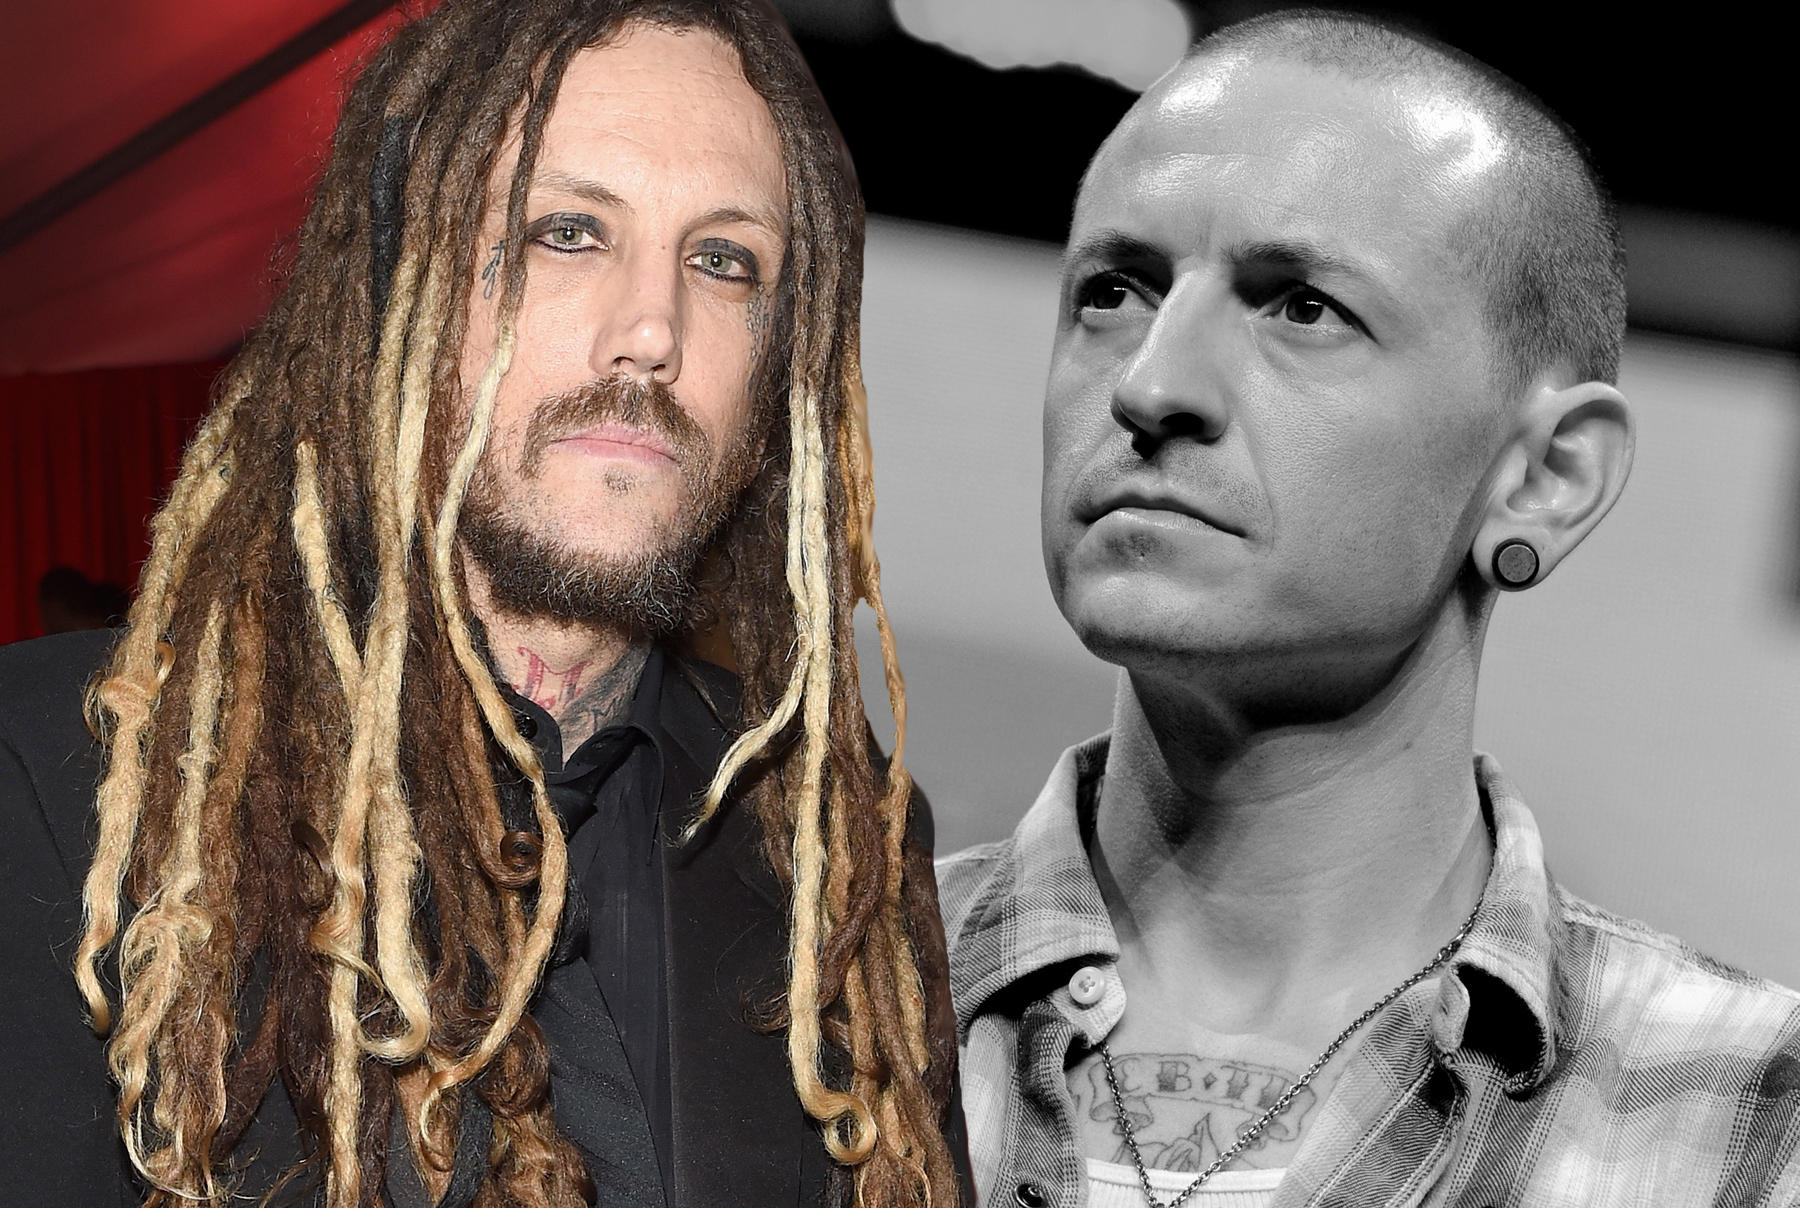 Brian Welch, Chester Bennington (†)